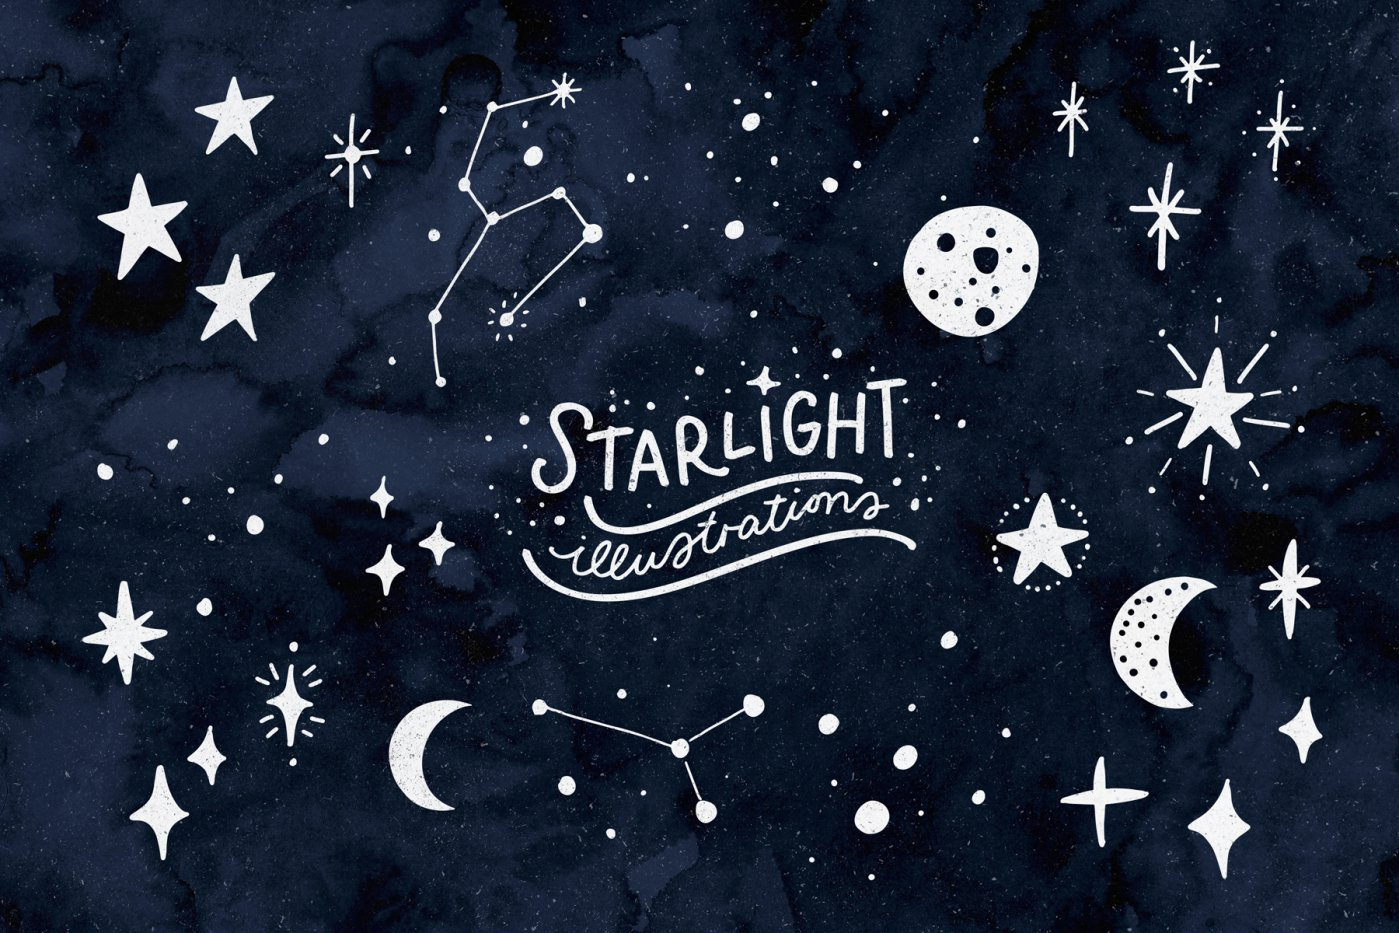 28 FREE STARLIGHT ILLUSTRATIONS